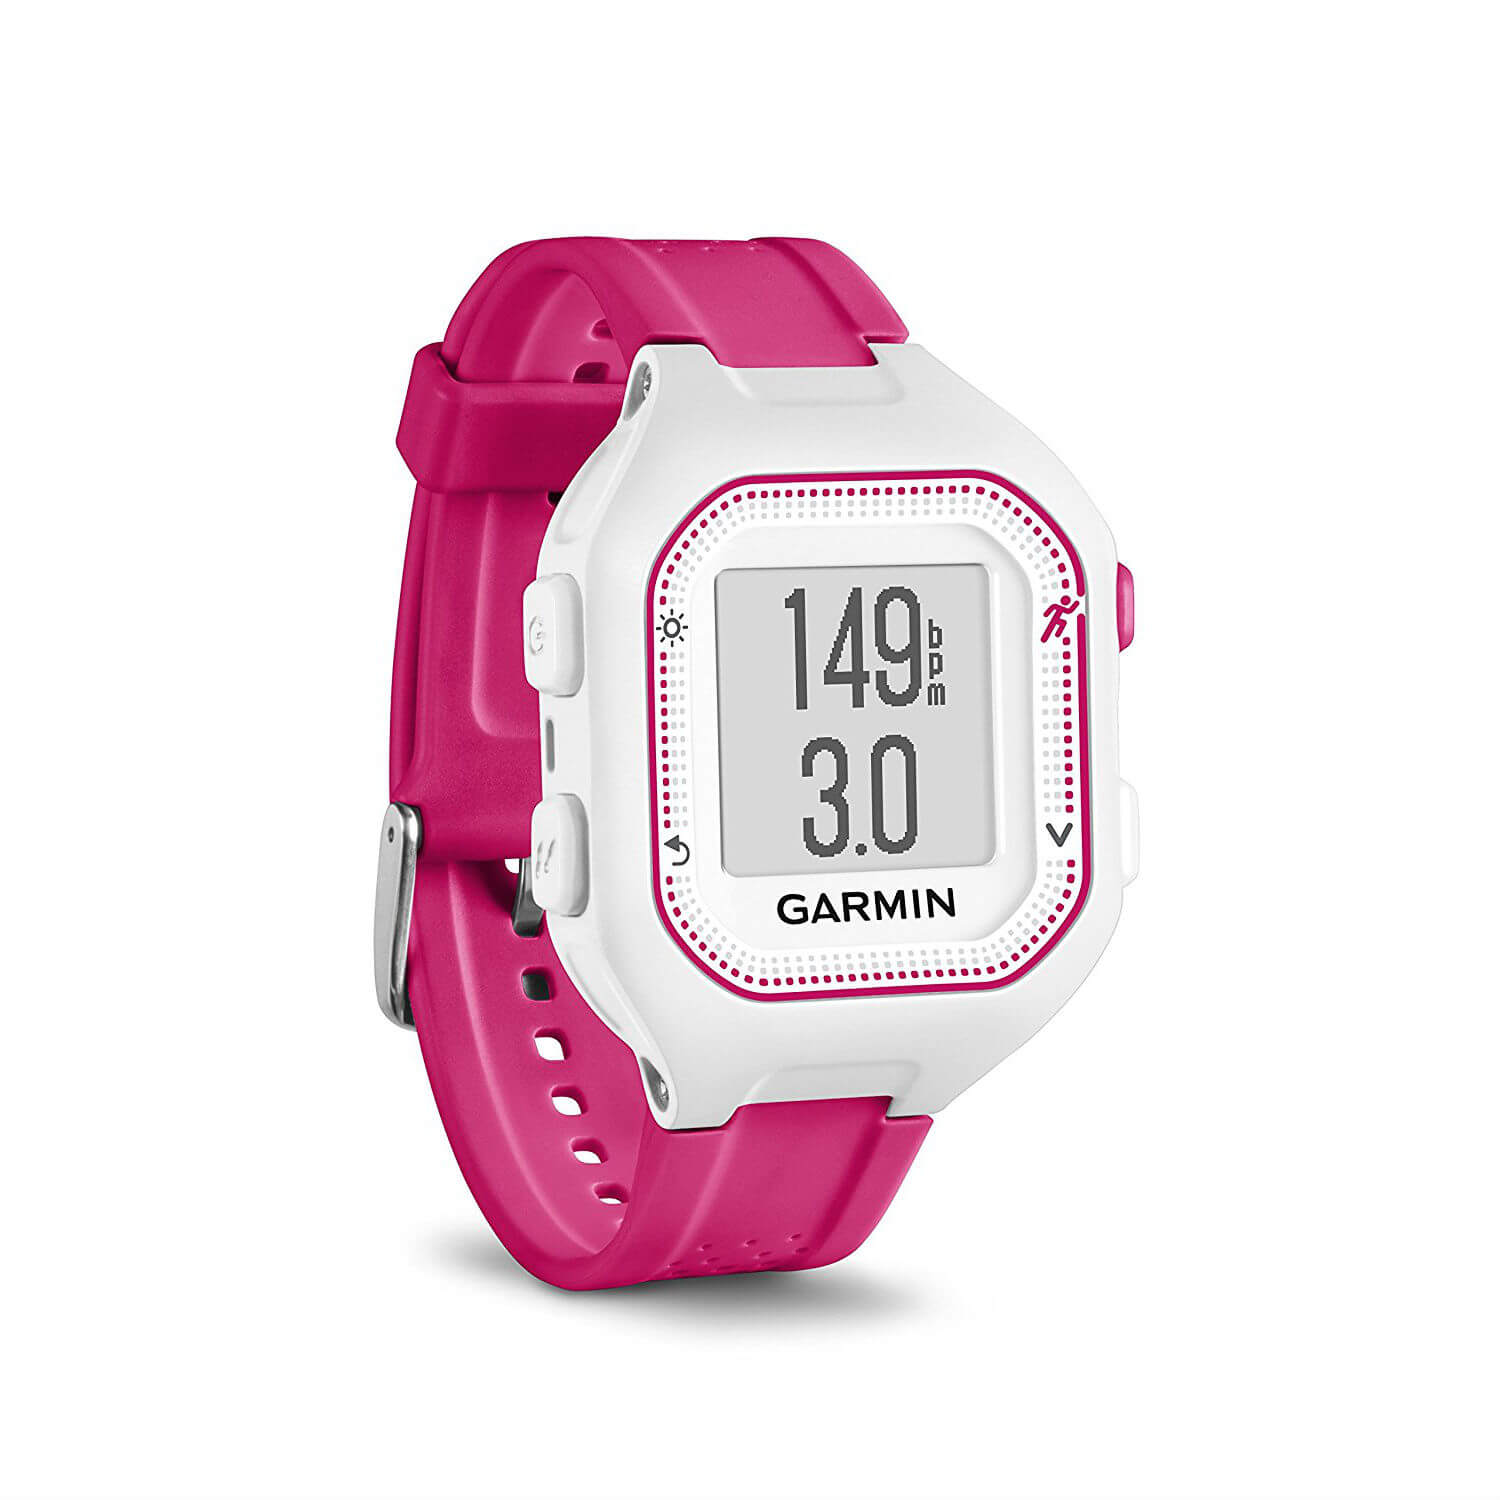 Garmin Forerunner 25 Easy-to-use GPS Running Watch with Smart Notifications (white-pink)